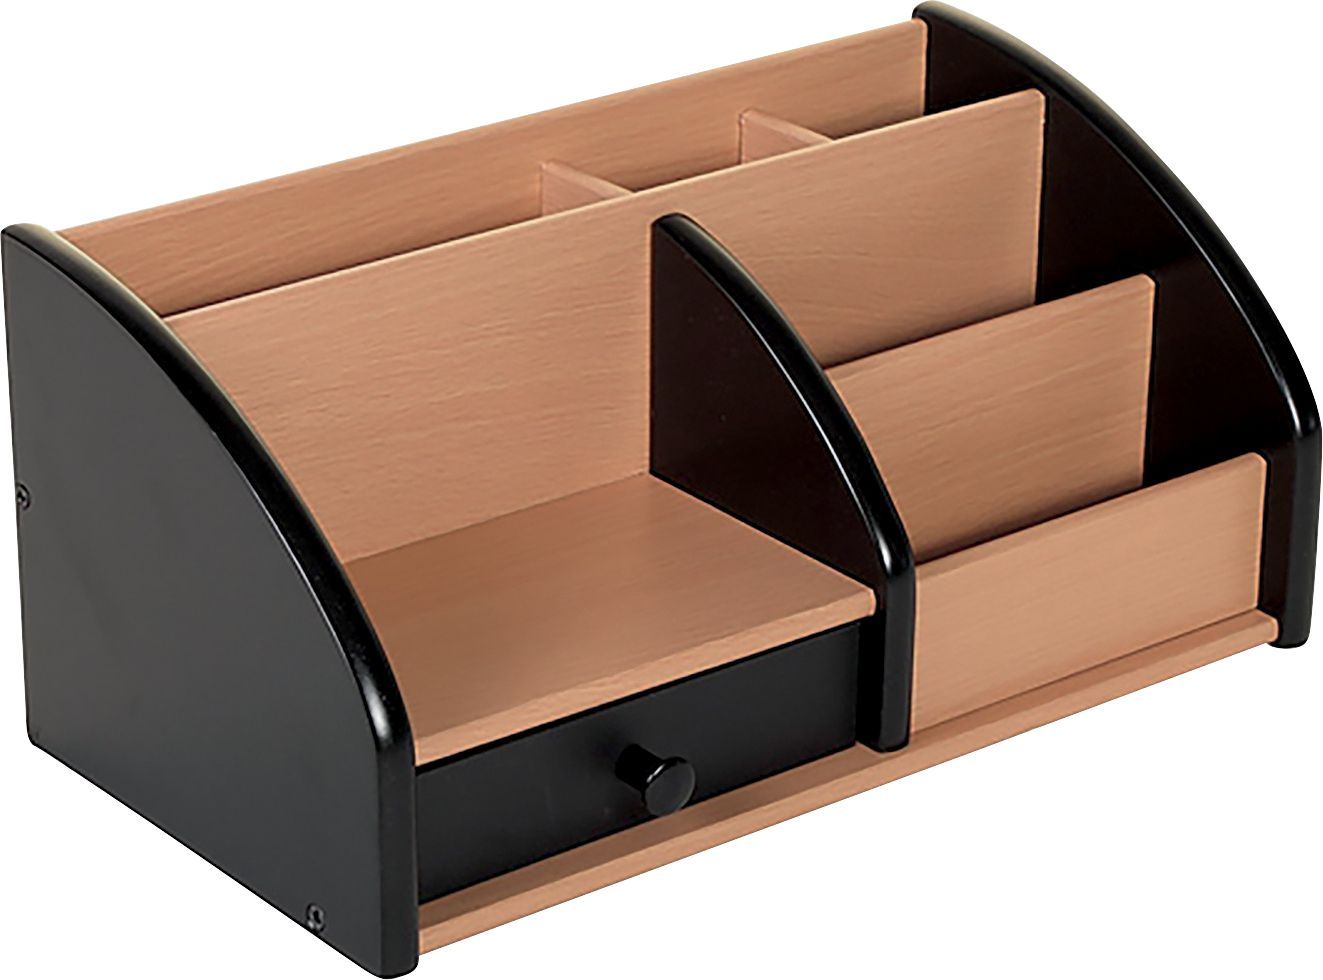 Osco Wooden Desk Organiser Black And Beech Stationary Pen Storage Holder Ebay